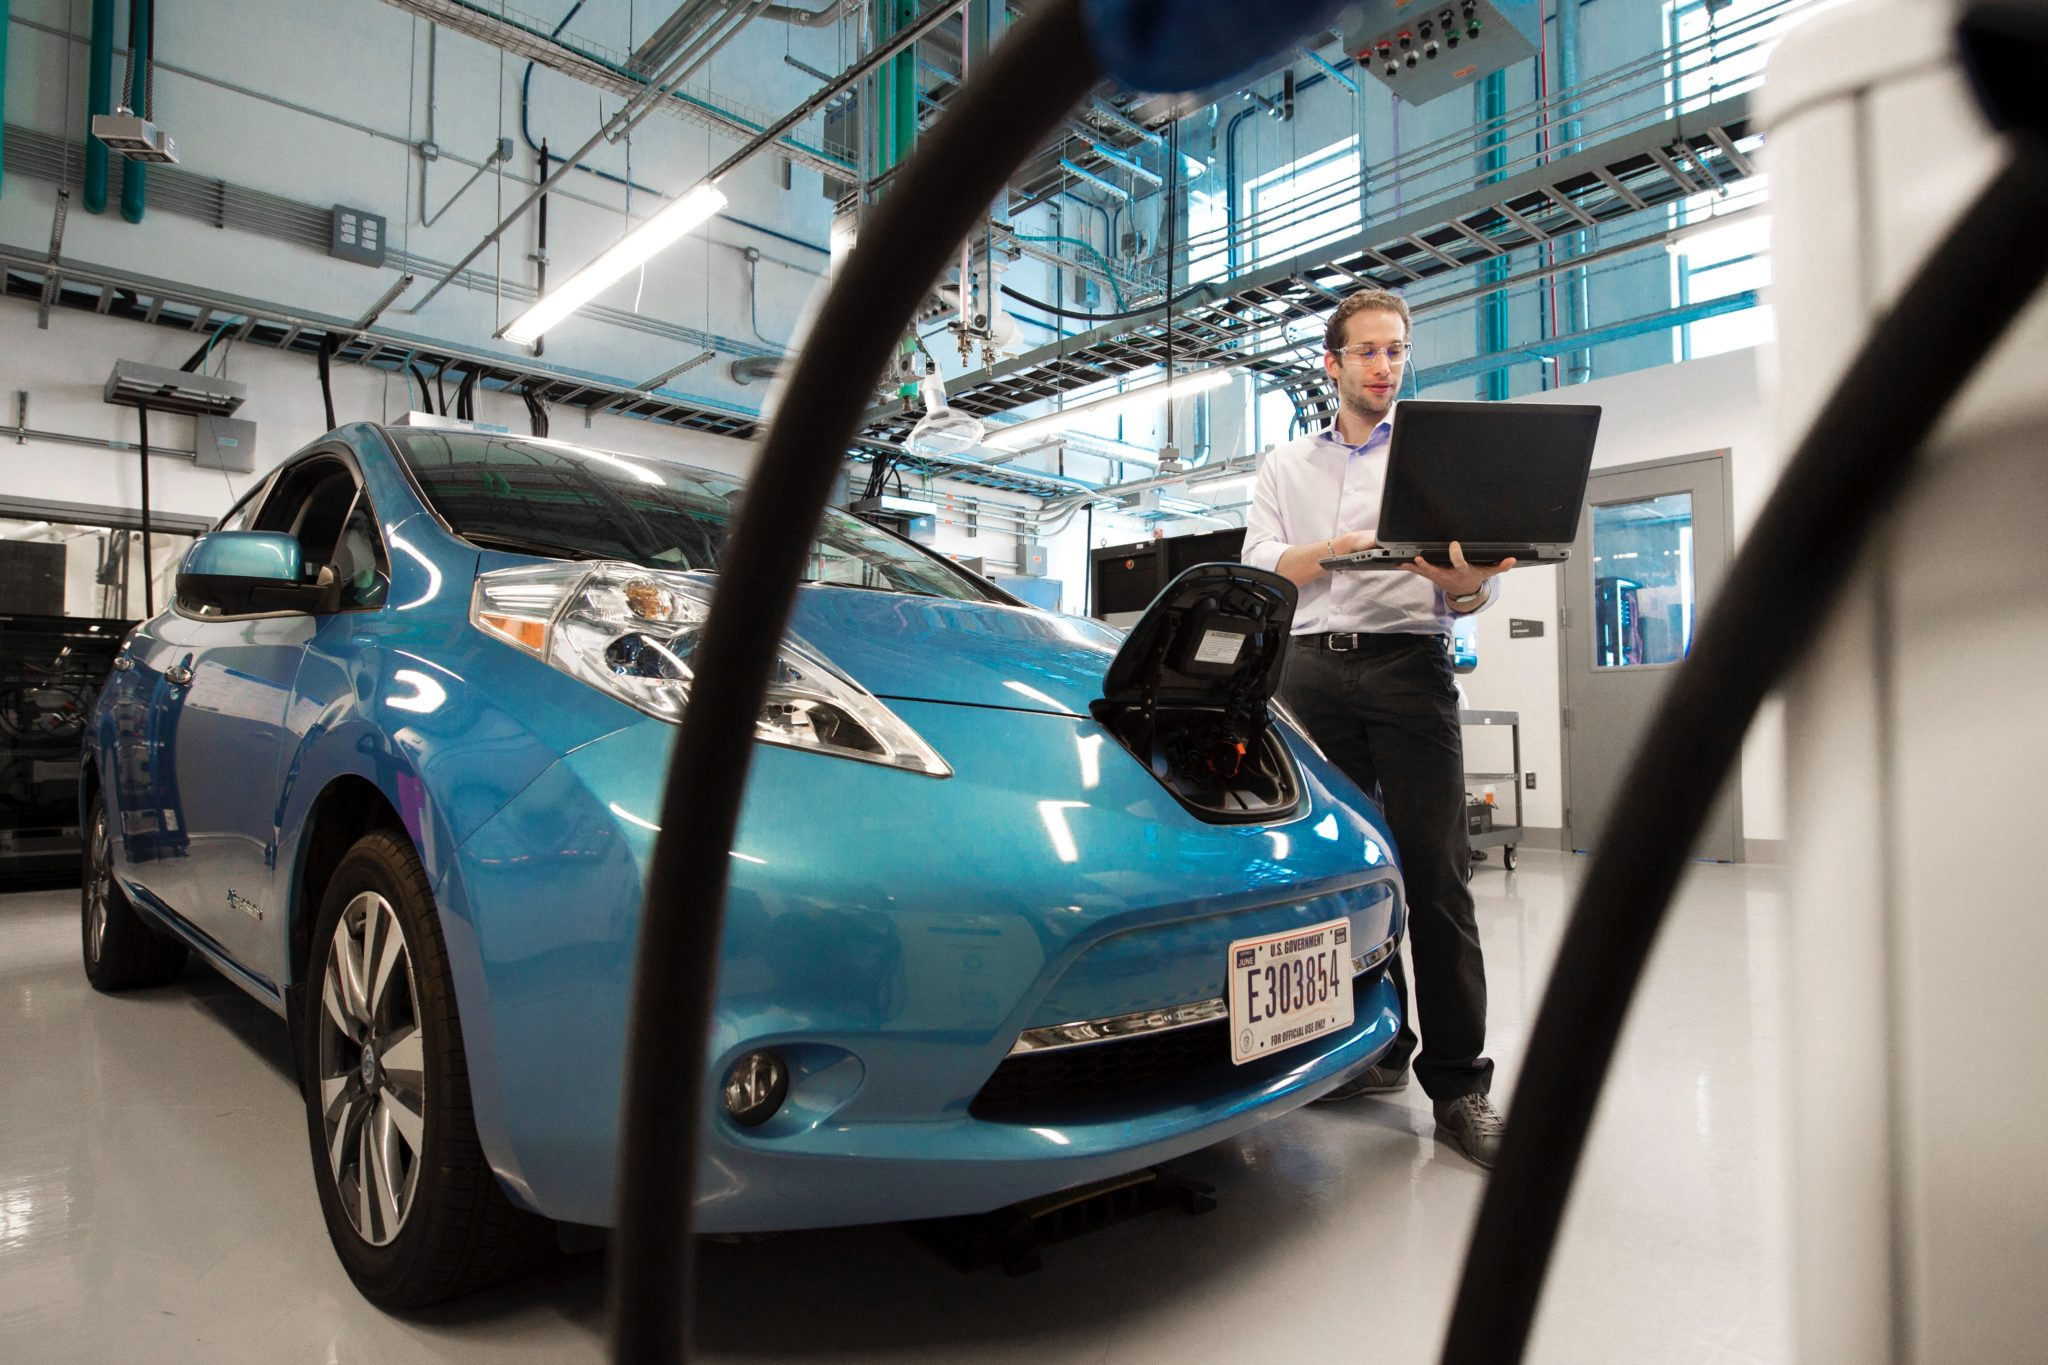 EV batteries show the promise of cleaner, electrified transportation